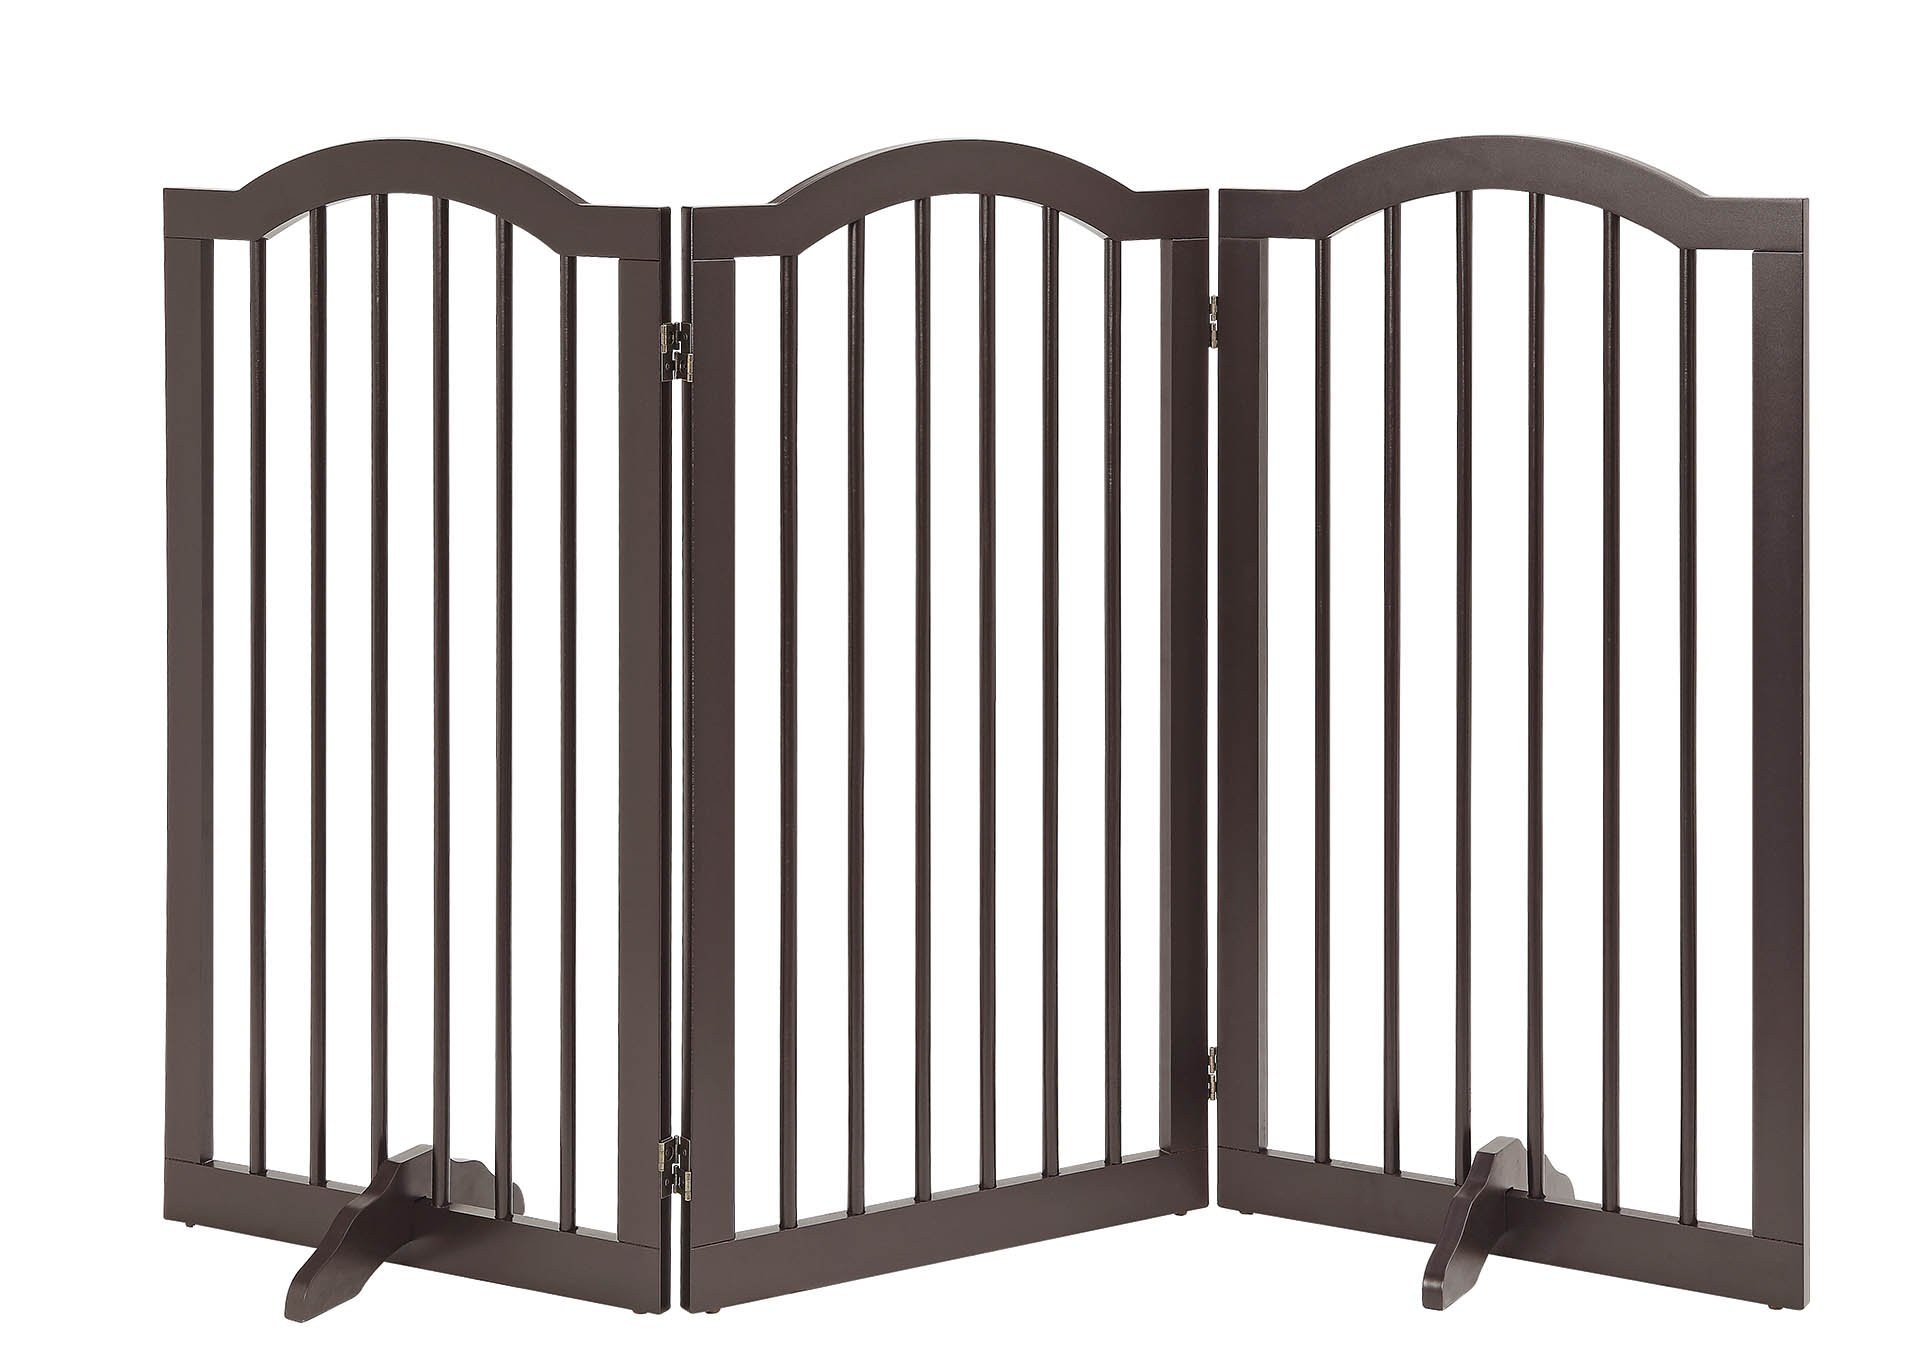 unipaws- Freestanding Arch 36'' Tall Dog Gate w/Support Feet (Espresso) | Up to 60'' Wide | Assembly-Free | Sturdy Wooden Structure | Foldable Design